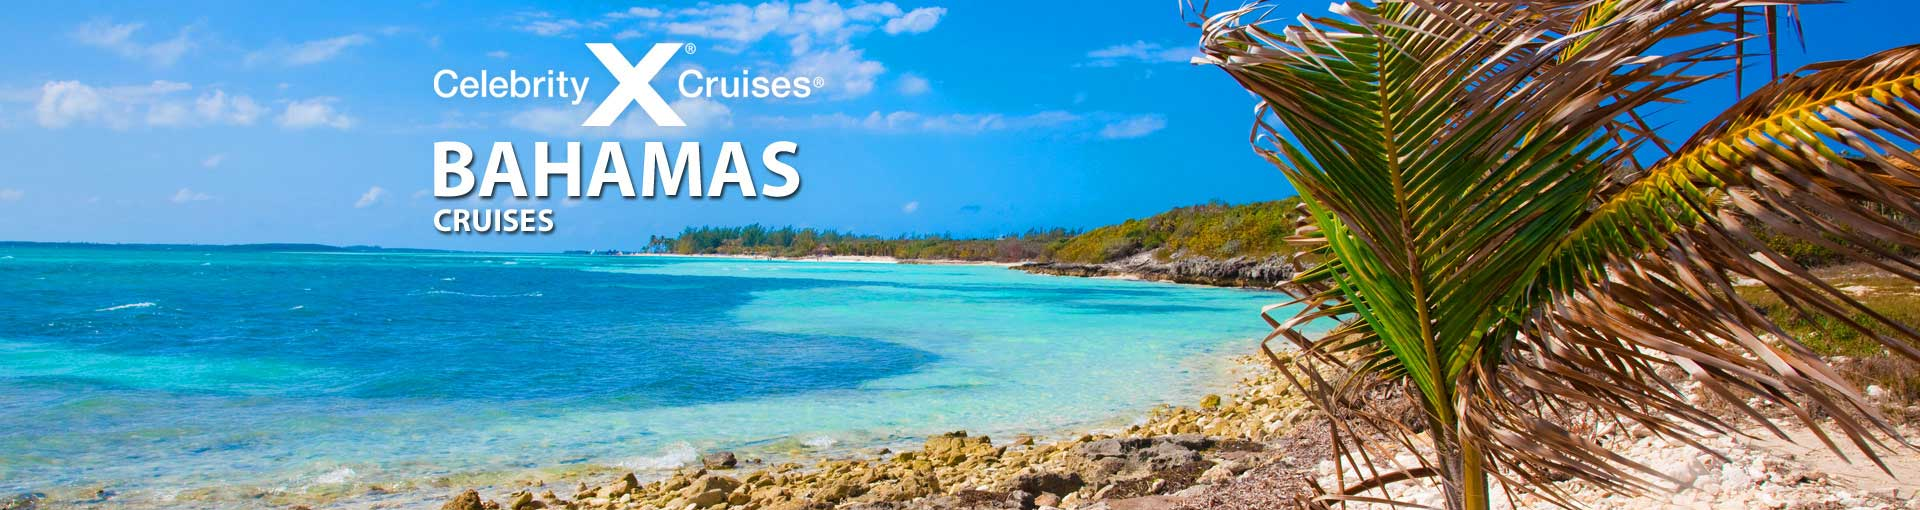 Celebrity Cruises: Destinations